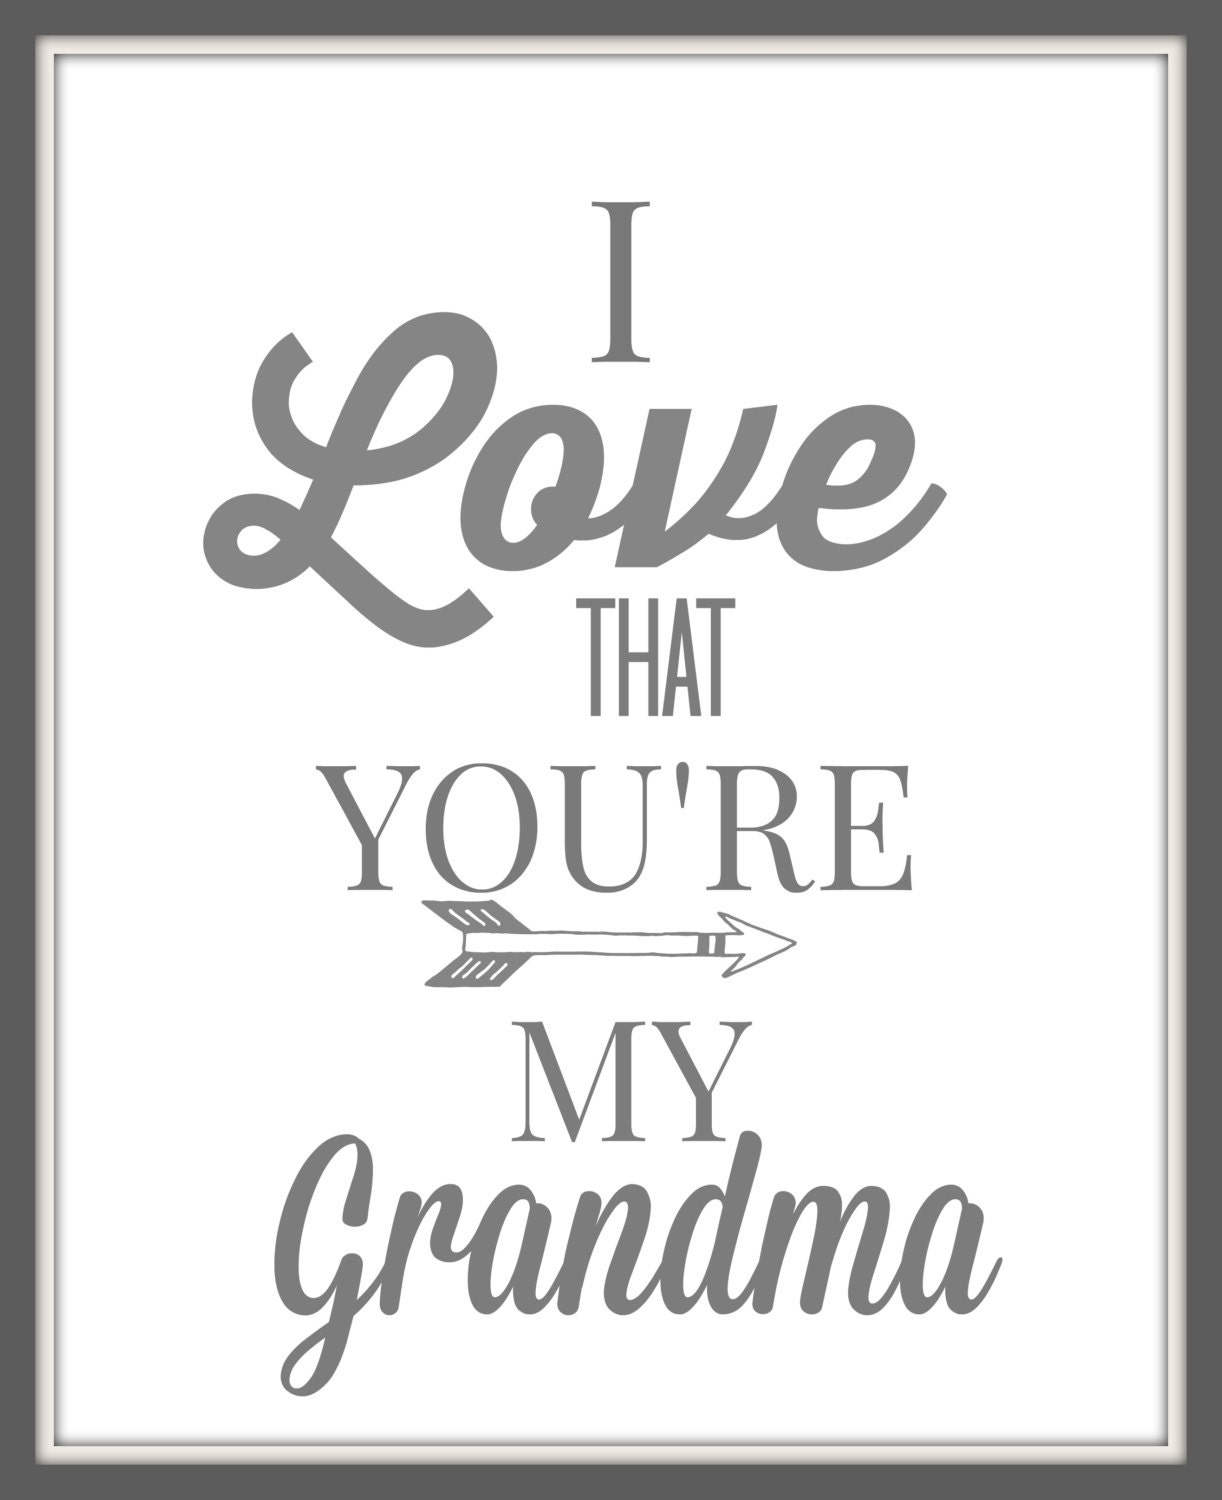 I Love You Nana Quotes : love you grandma quotes Quotes